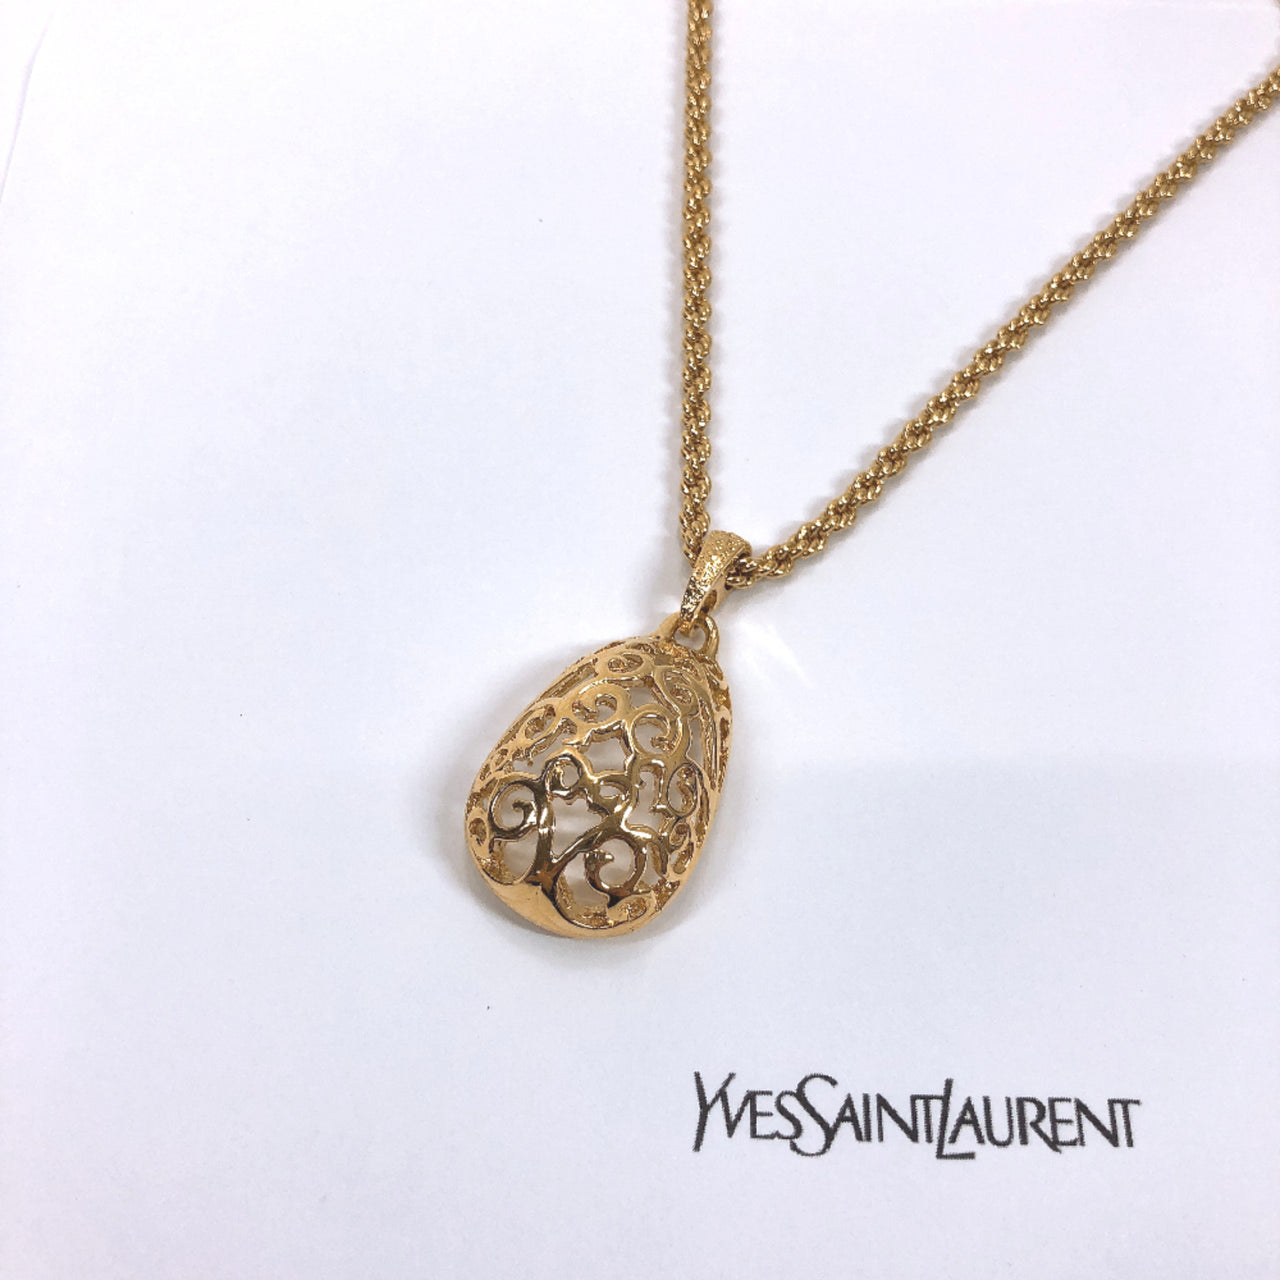 YVES SAINT LAURENT Necklace metal gold Women Used